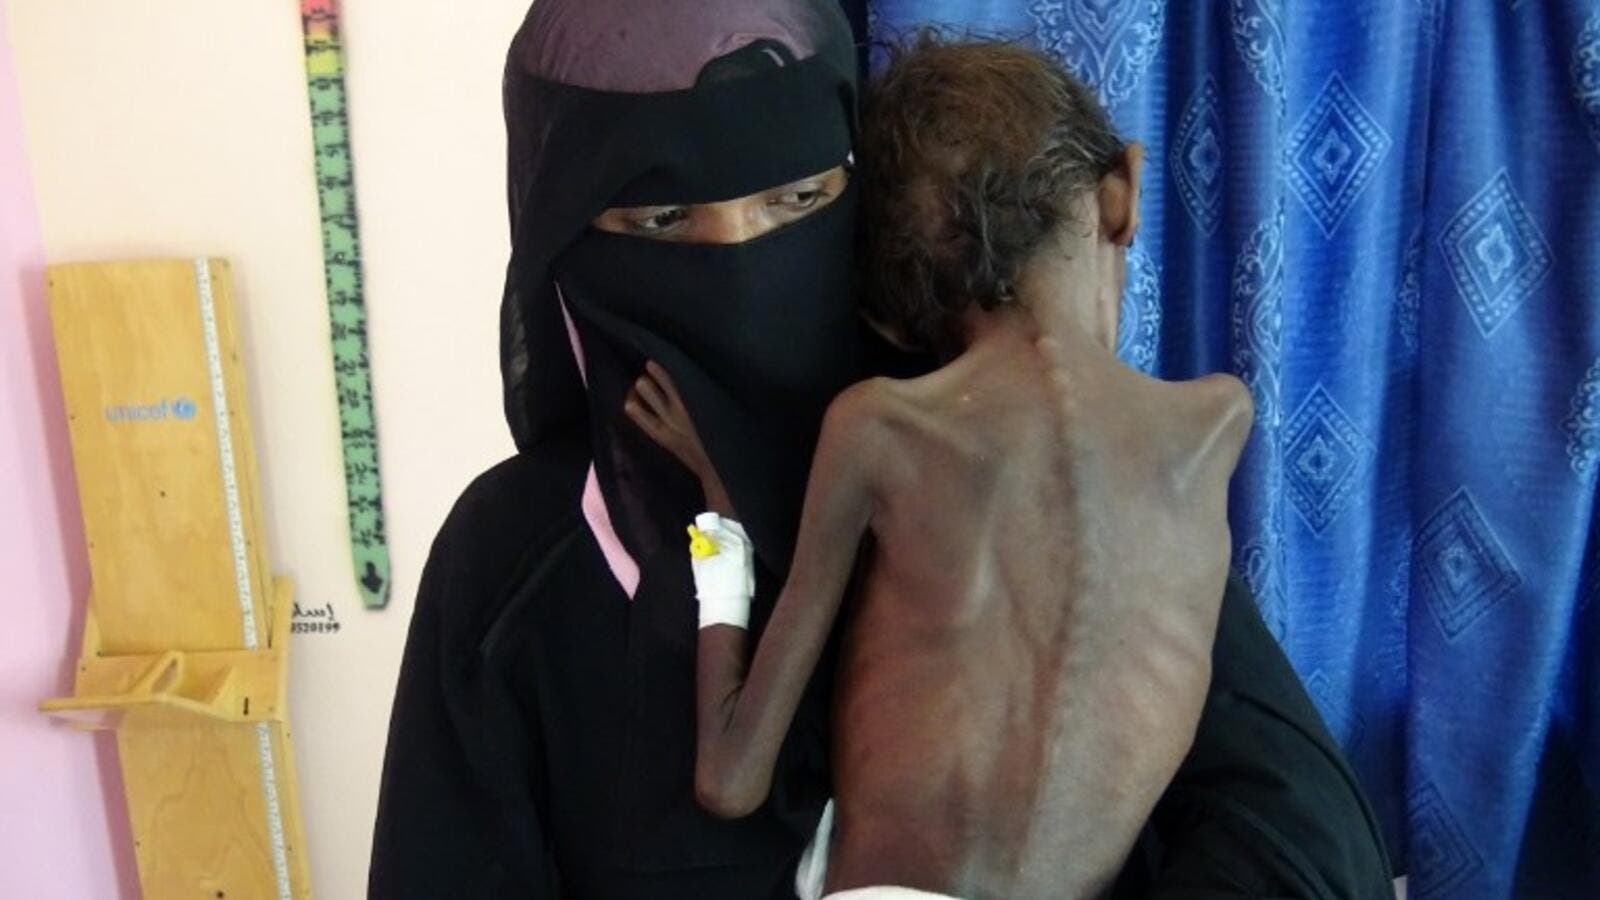 emeni mother Nadia Nahari holding her five-year-old son Abdelrahman Manhash, who is suffering from severe malnutrition and weighing 5 kilograms (AFP)